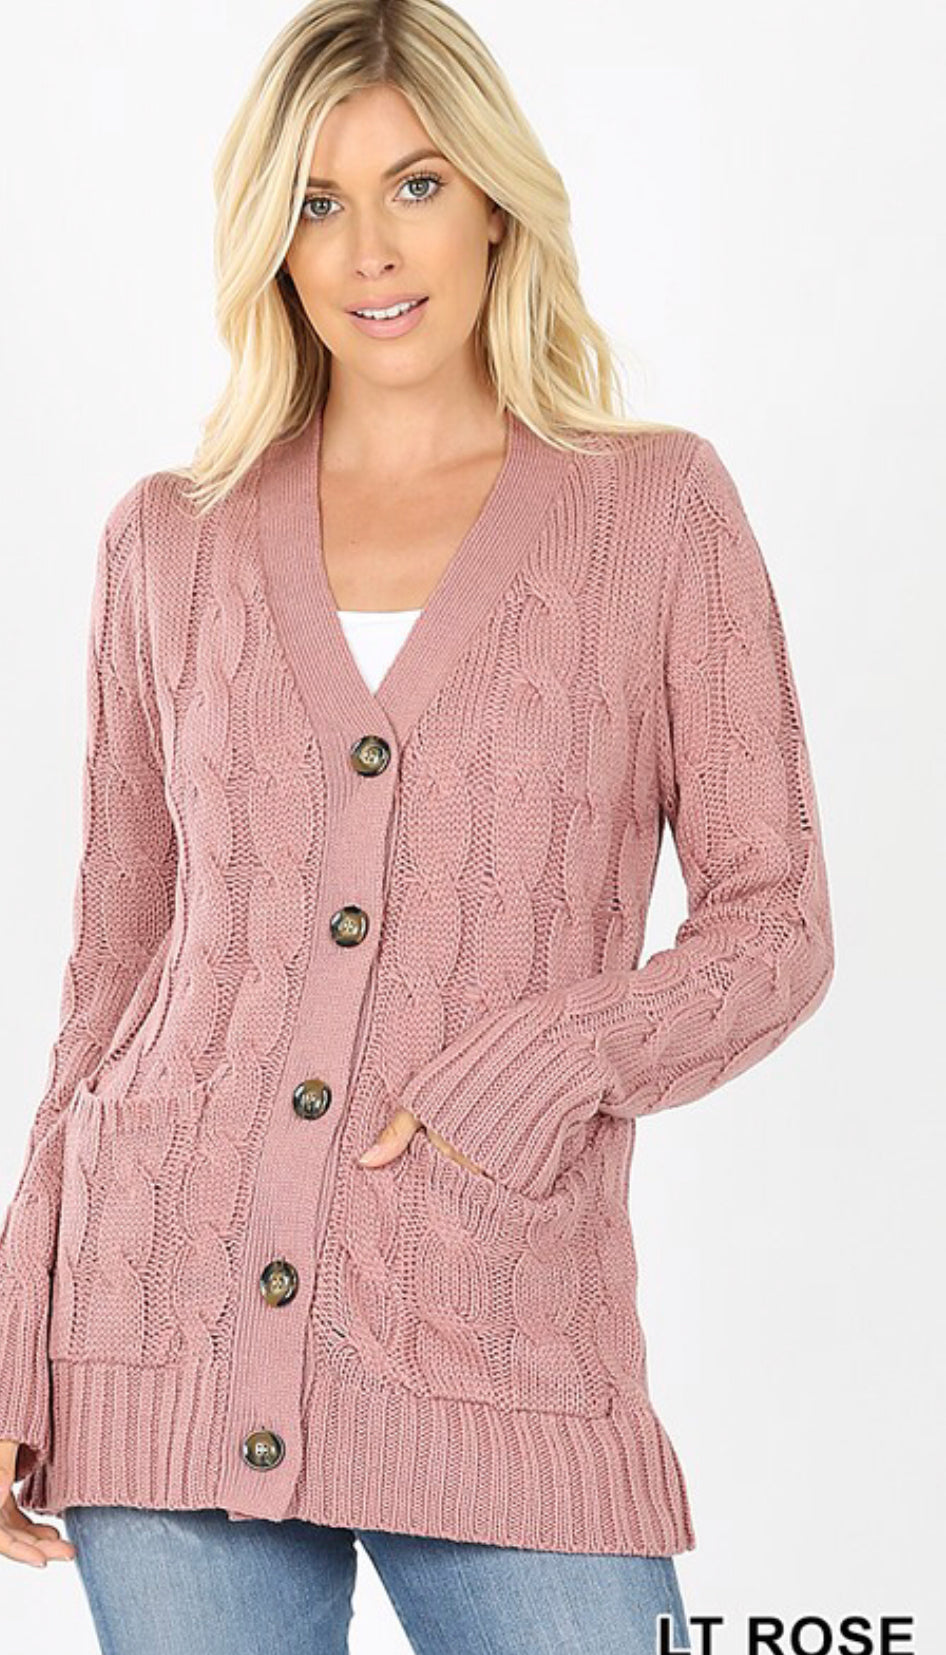 Cottage Cable-Knit Cardigan Sweater